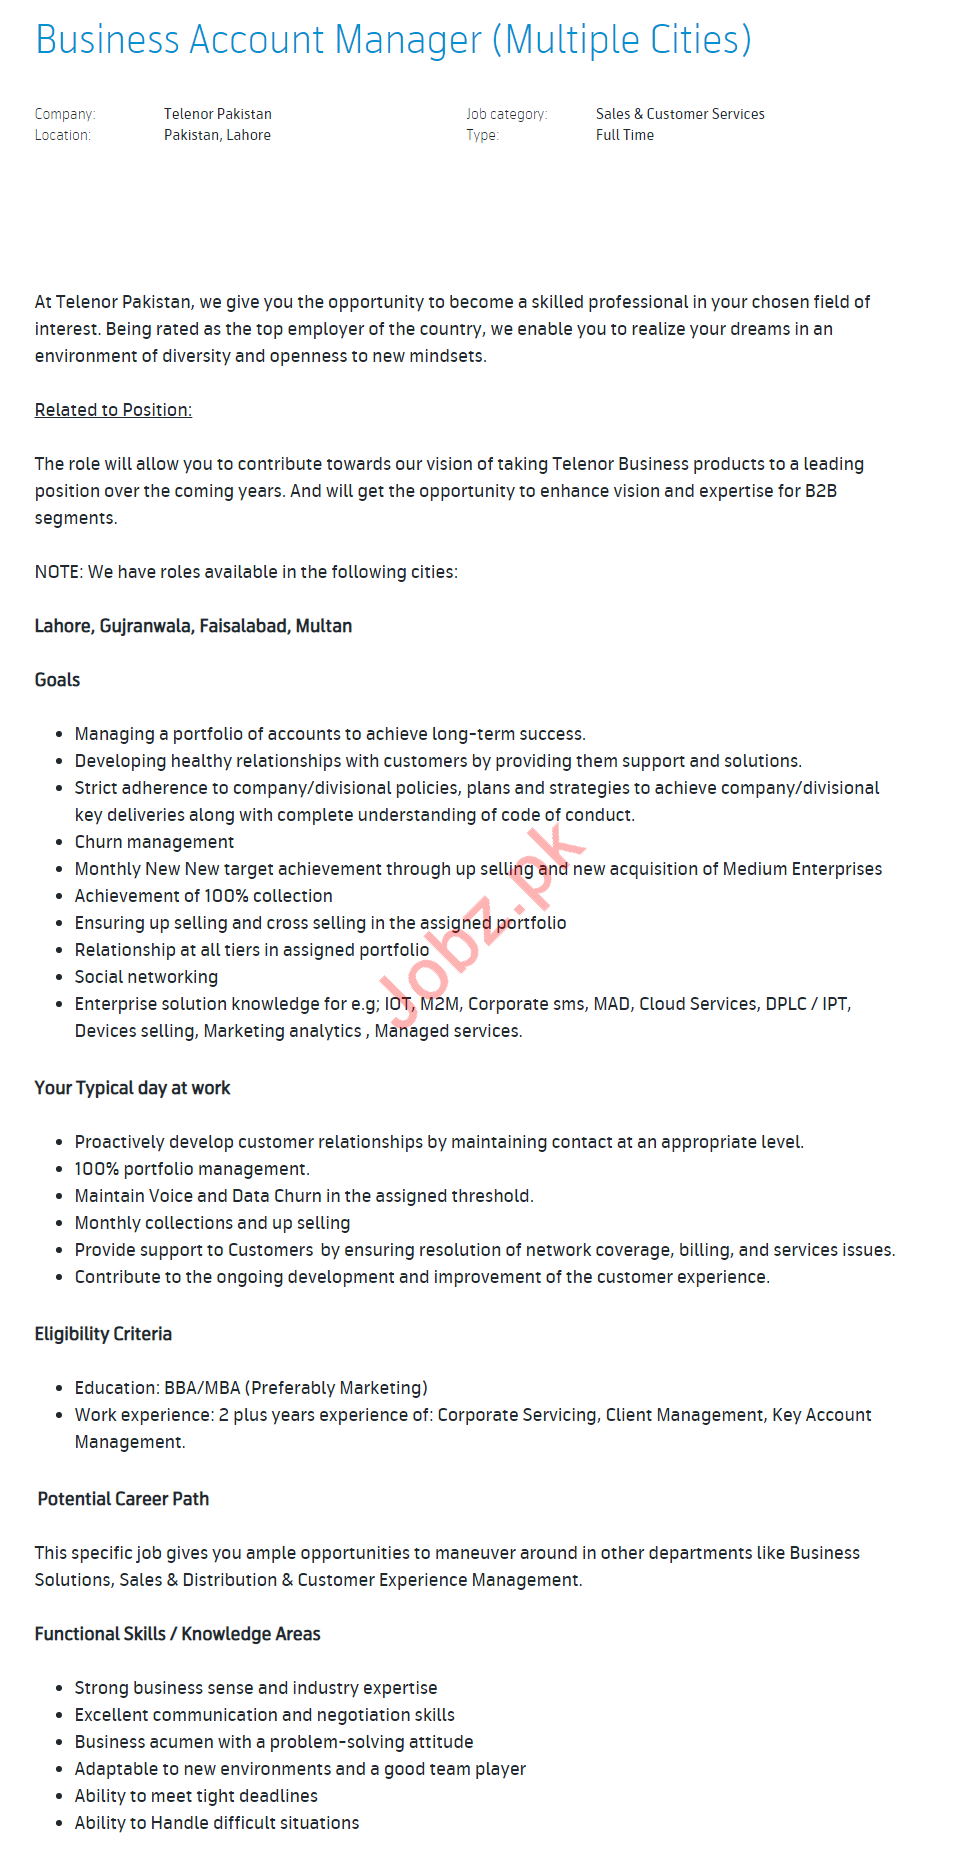 Business Account Manager Jobs in Telenor Pakistan